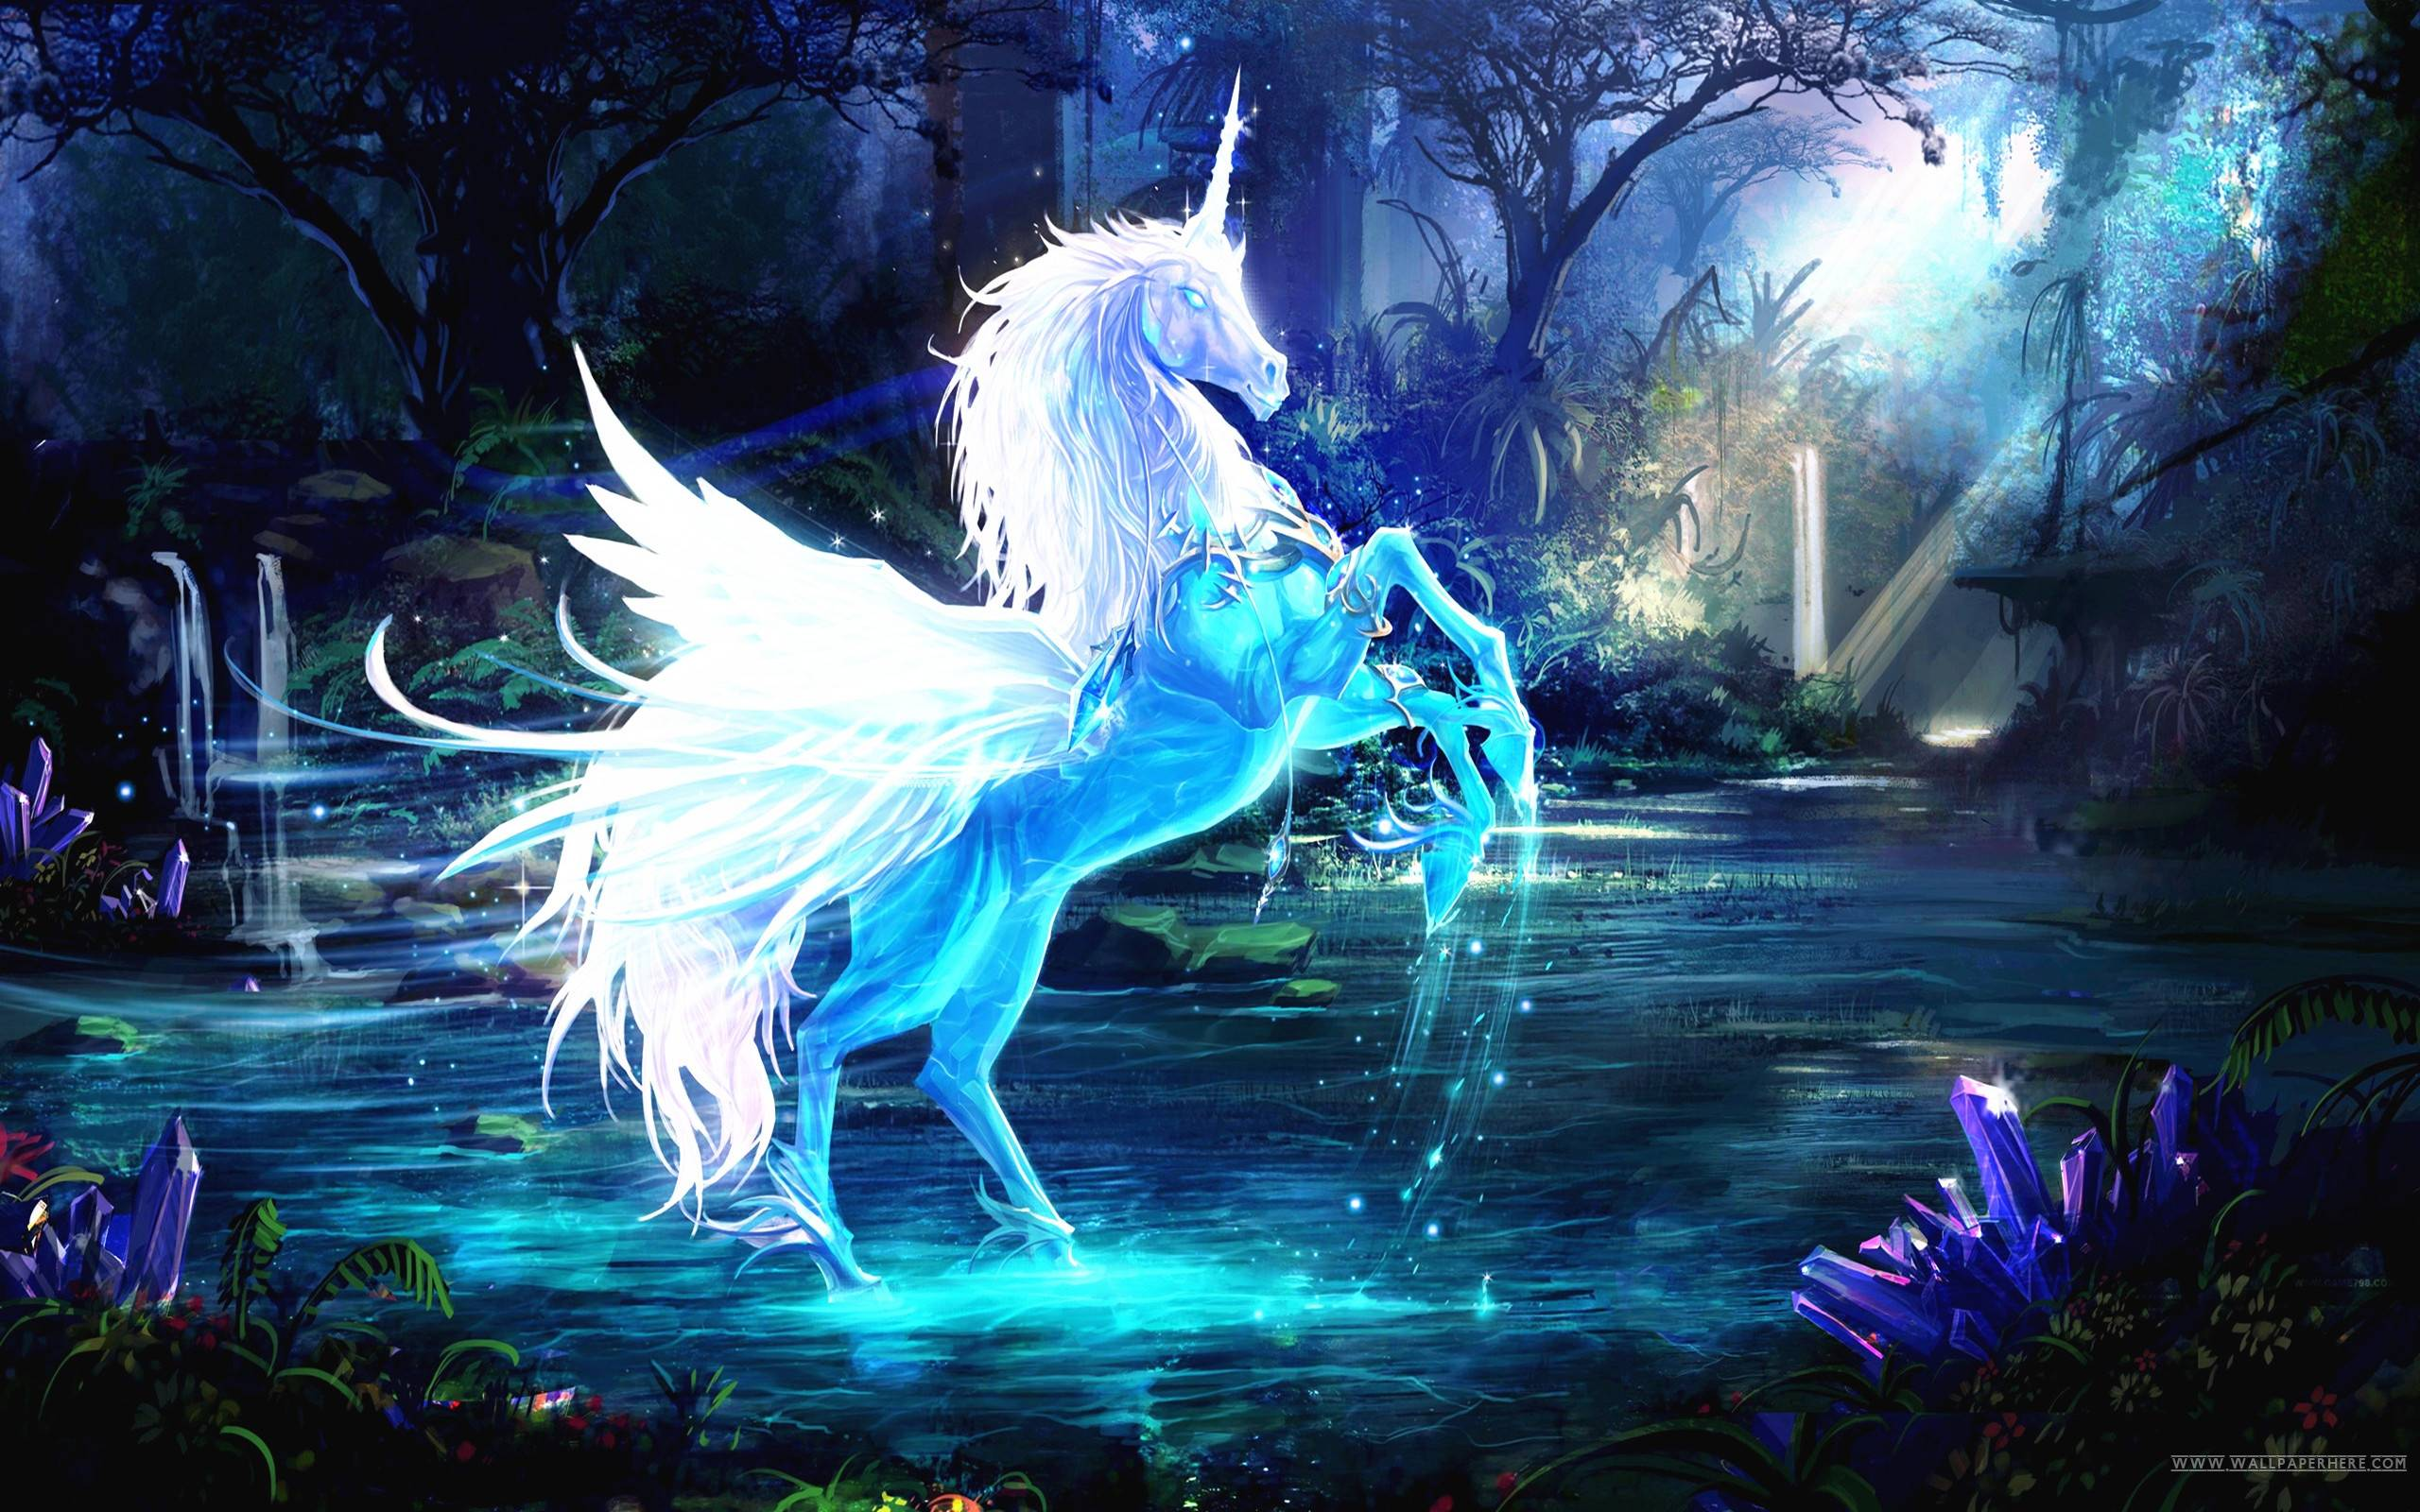 Hd wallpaper unicorn - Unicorn Wallpapers Full Hd Wallpaper Search Page 2